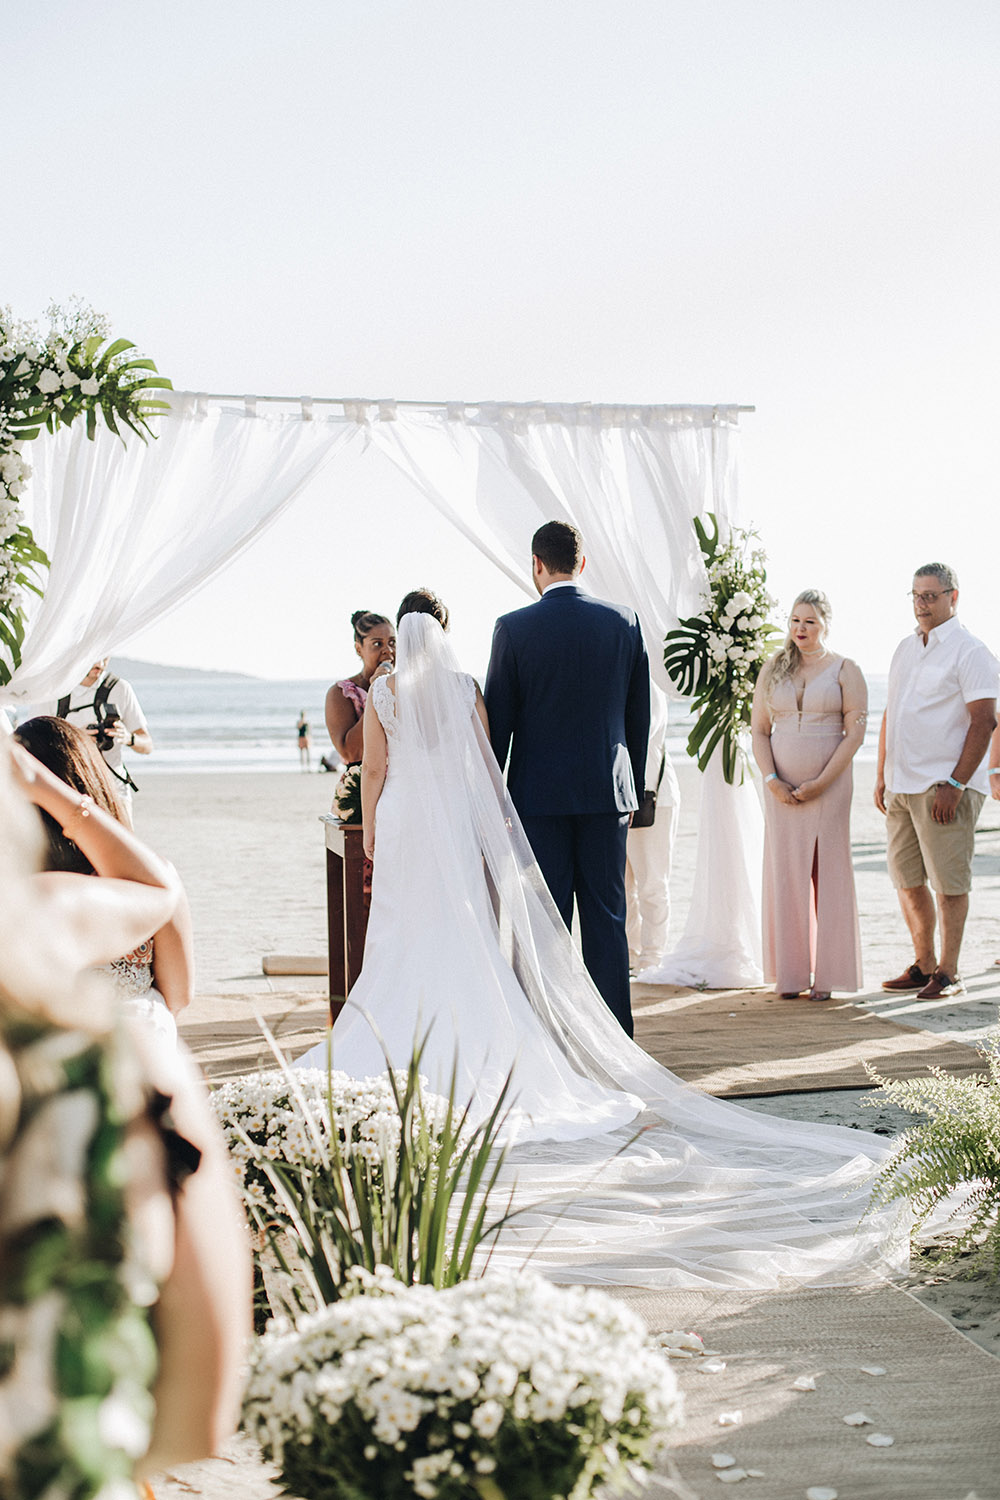 Beach wedding Photo: unsplash